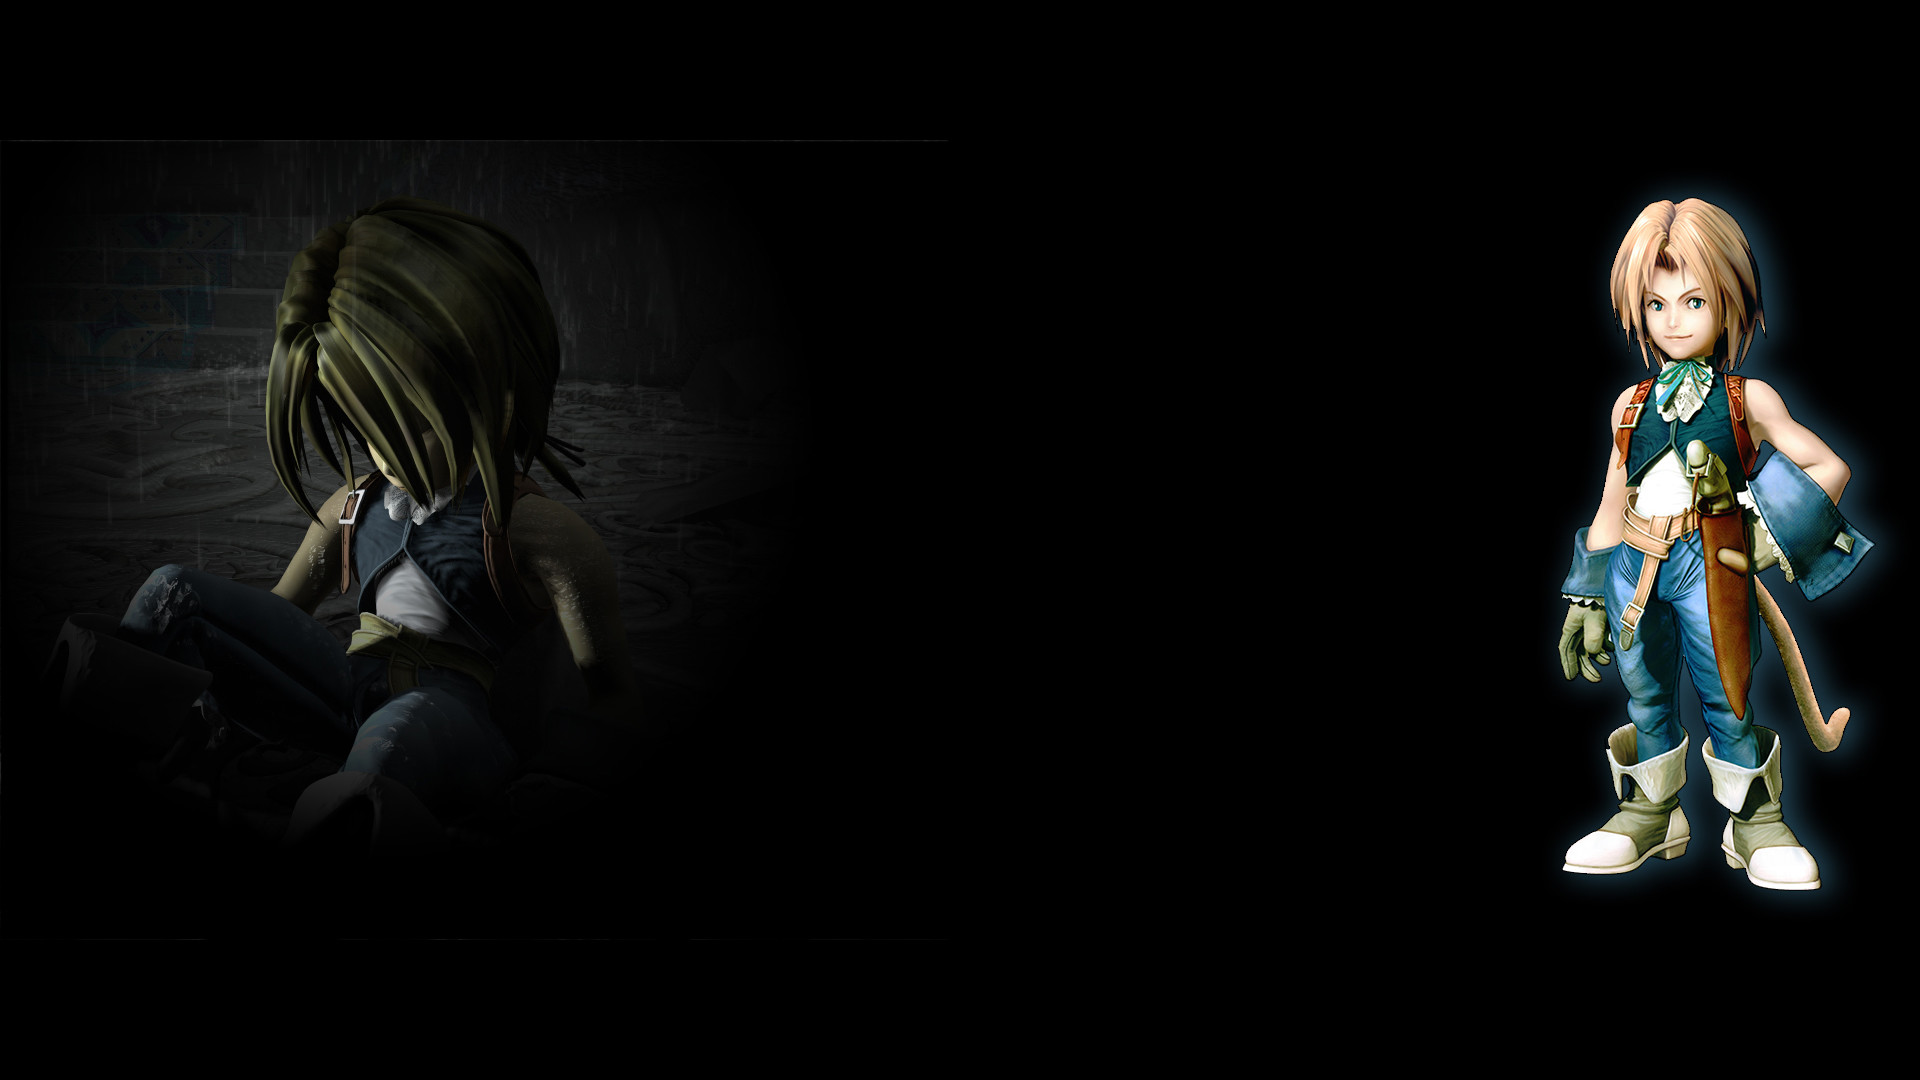 Final fantasy ix wallpapers 71 background pictures - Final fantasy 9 wallpaper 1920x1080 ...